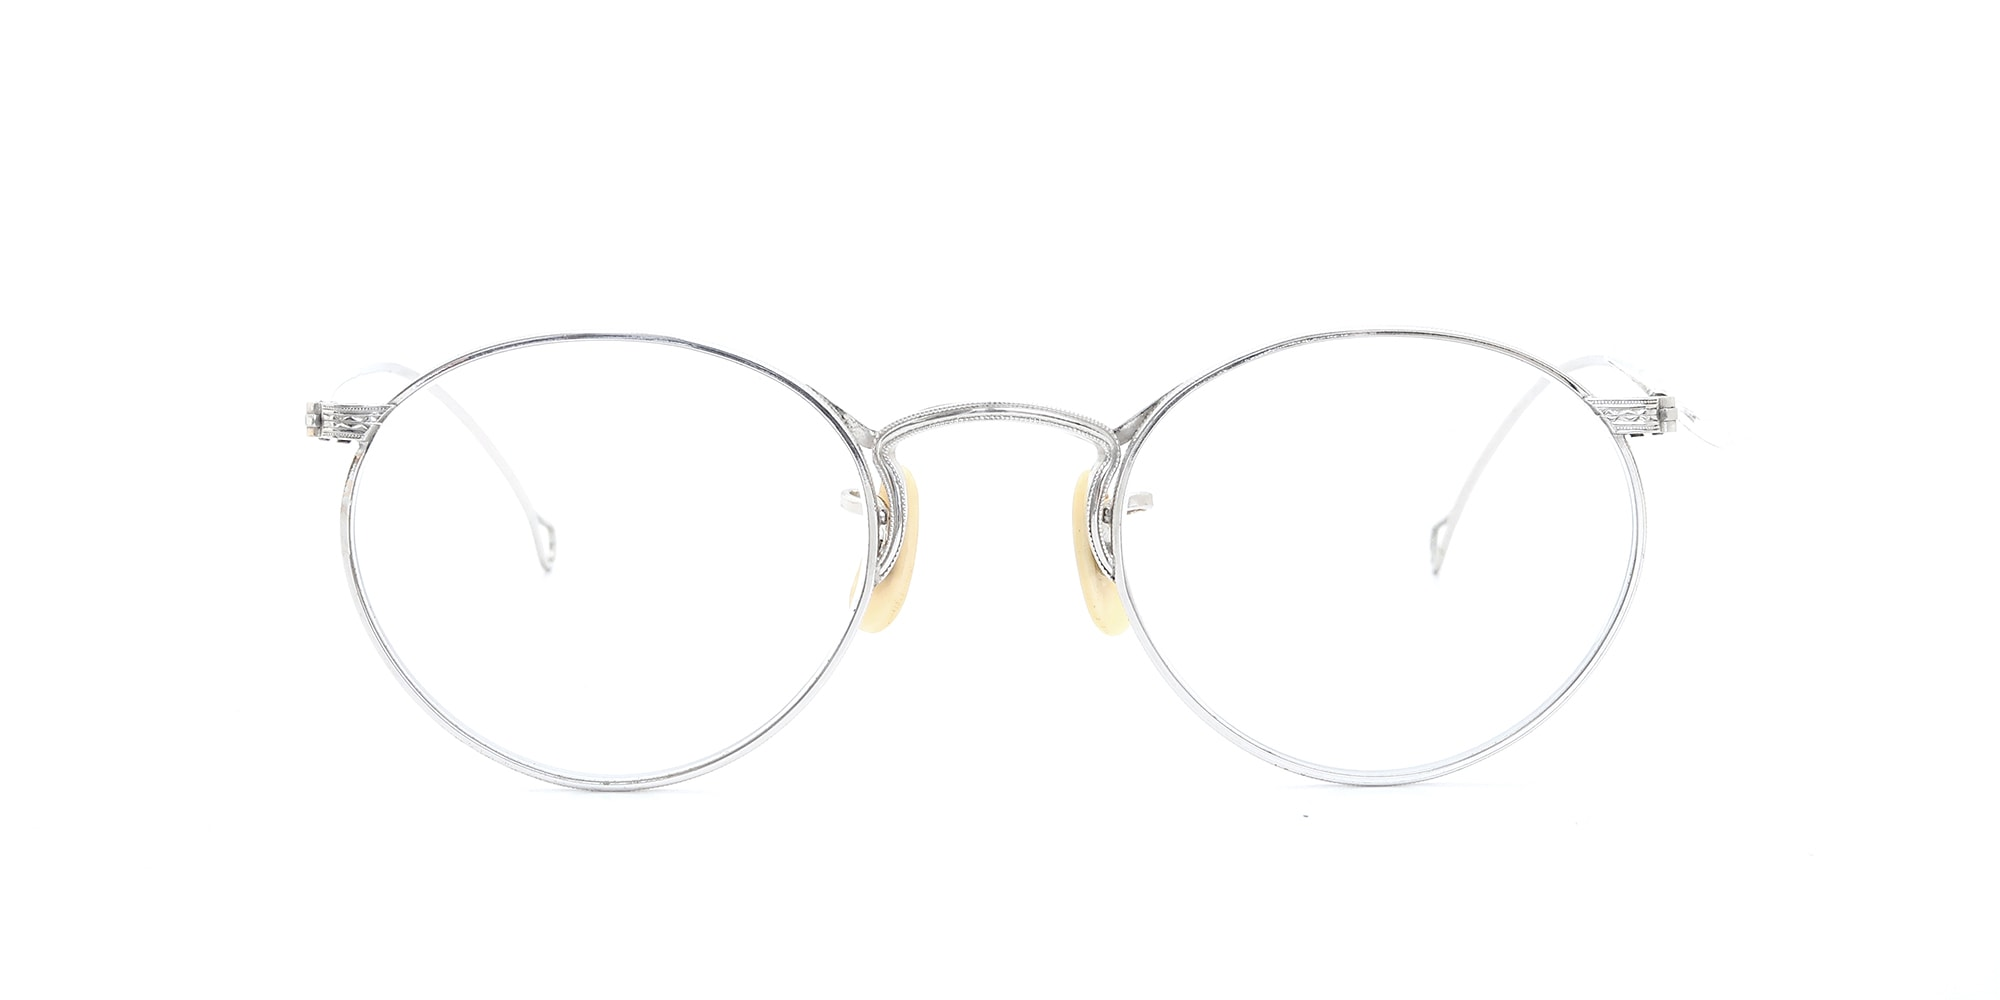 The Spectacle メガネ 1930s-40s American Optical Full-Frame Ful-Vue P-5 WG イメージ3